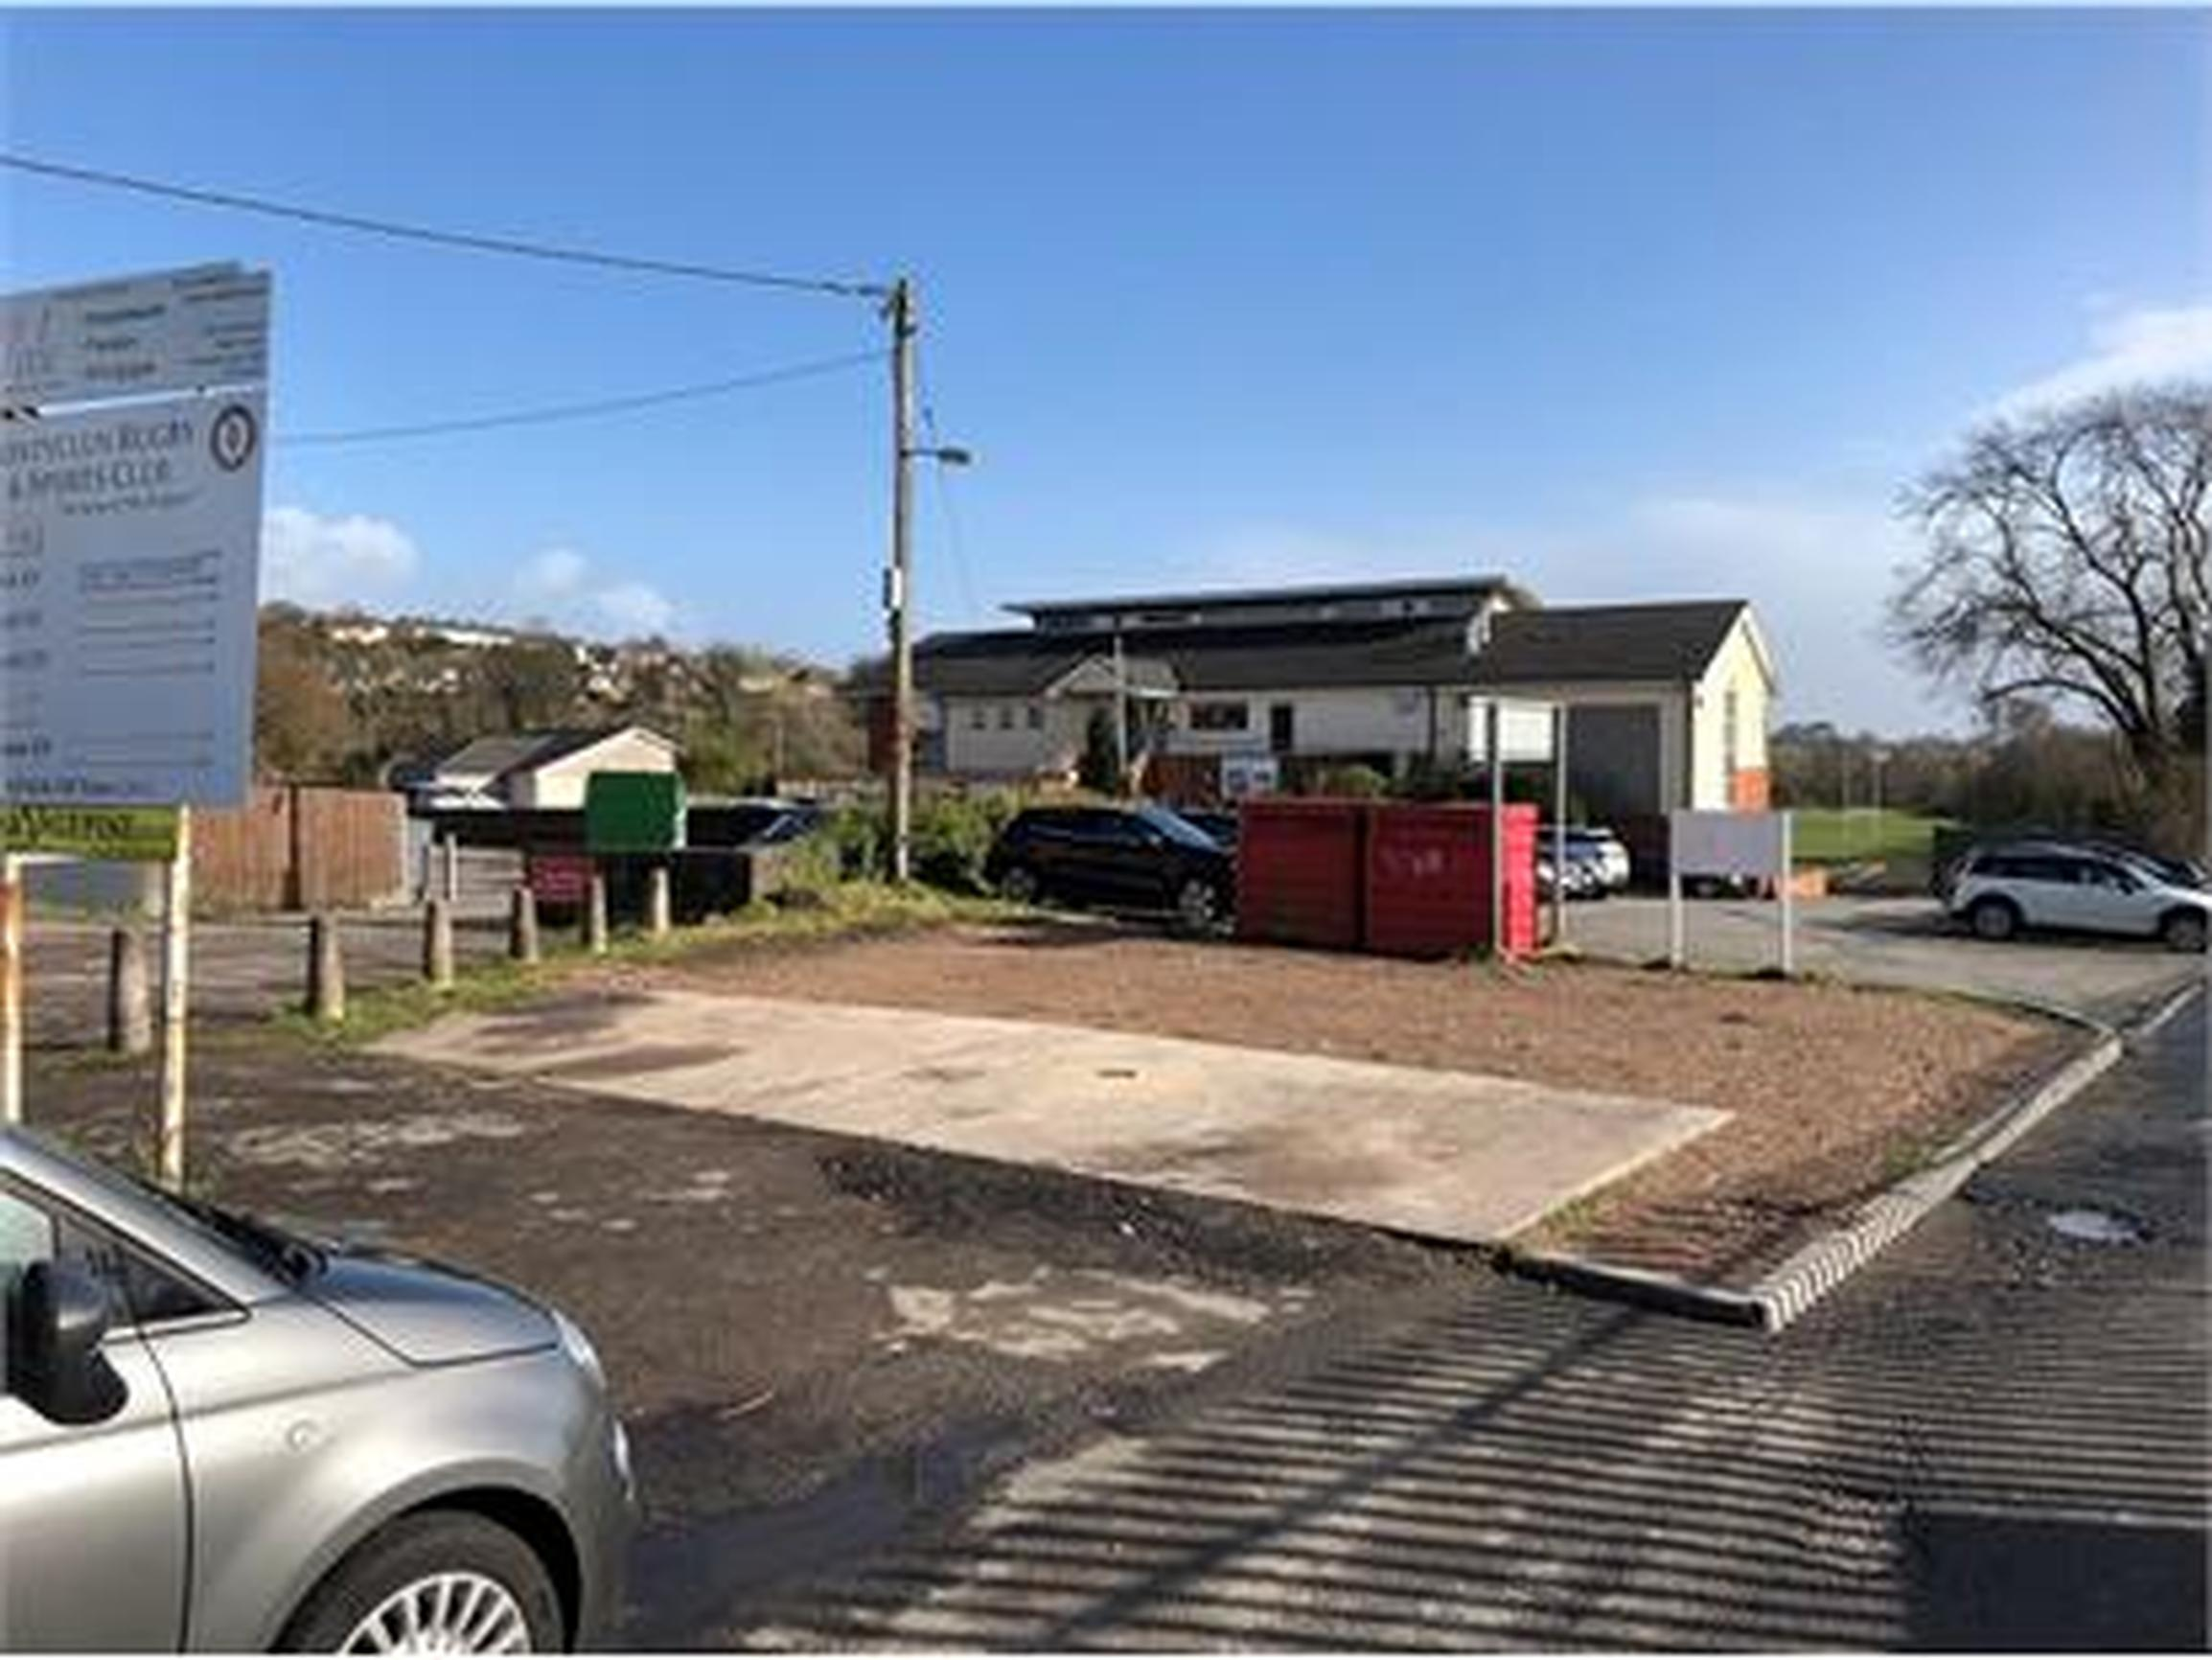 Welsh community rugby club parking upgraded